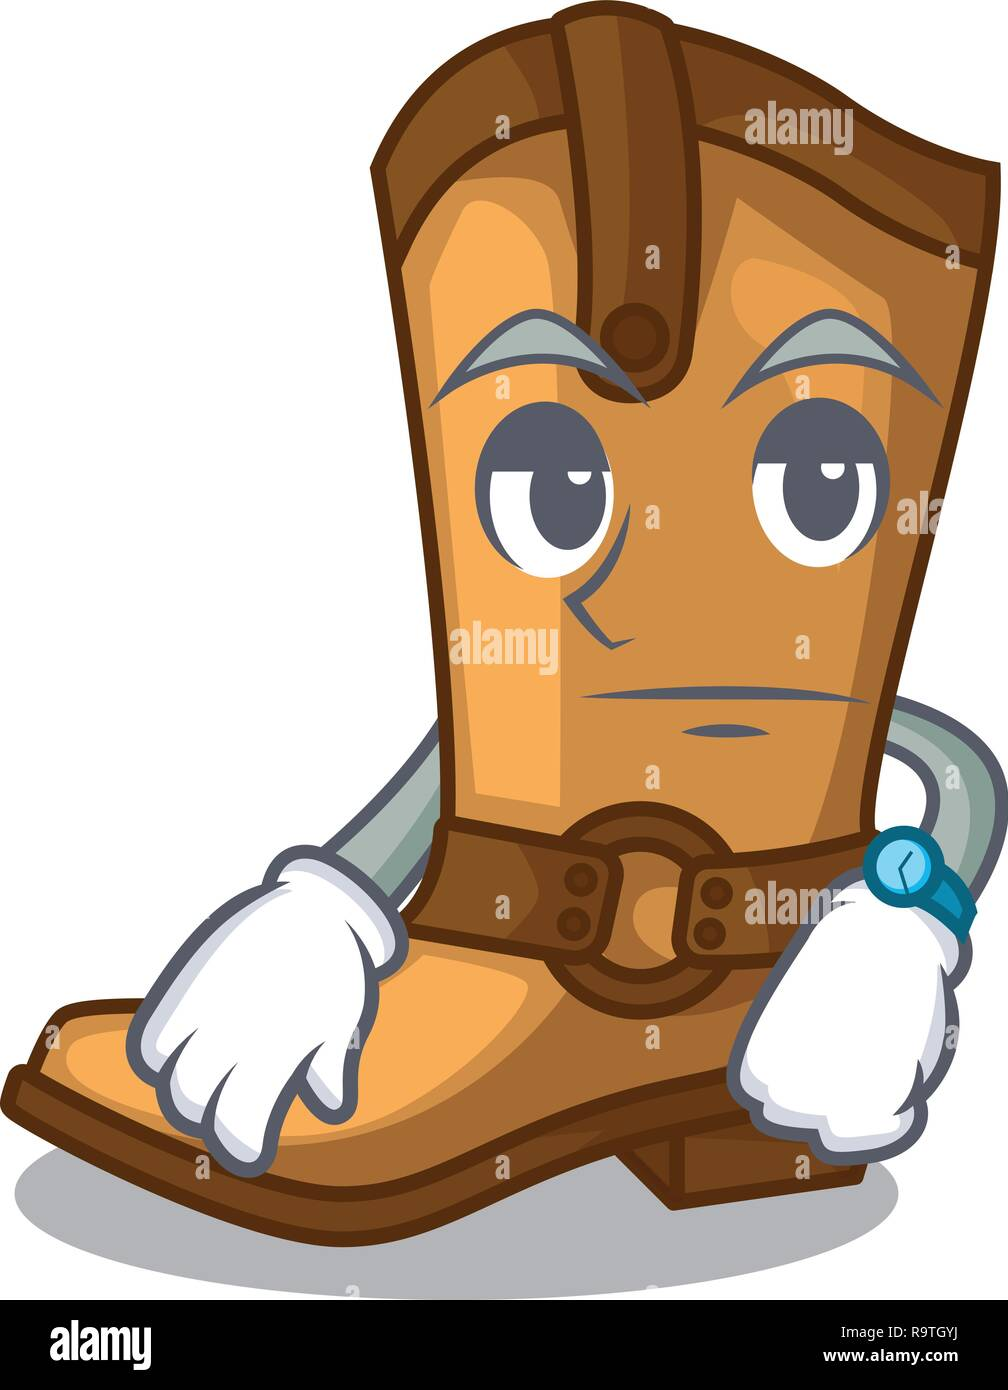 Waiting leather cowboy boots shape cartoon funny - Stock Vector